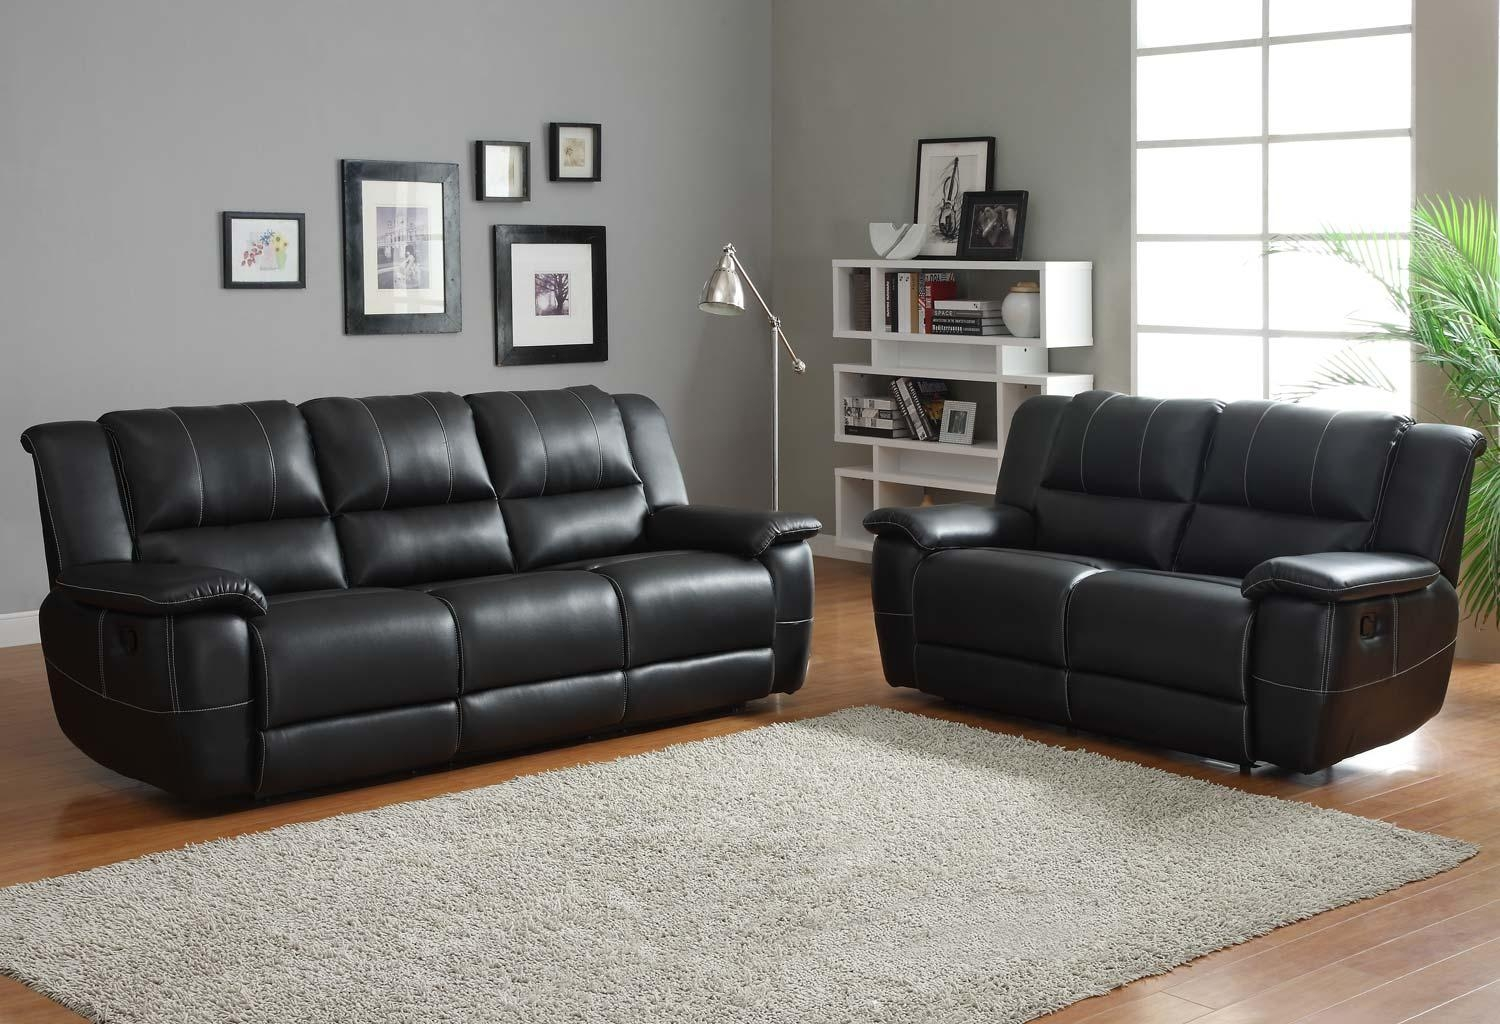 Sofas Center : Shocking Black Sofa Set Picture Ideas Home Paris Inside Contemporary Black Leather Sofas (Image 20 of 20)